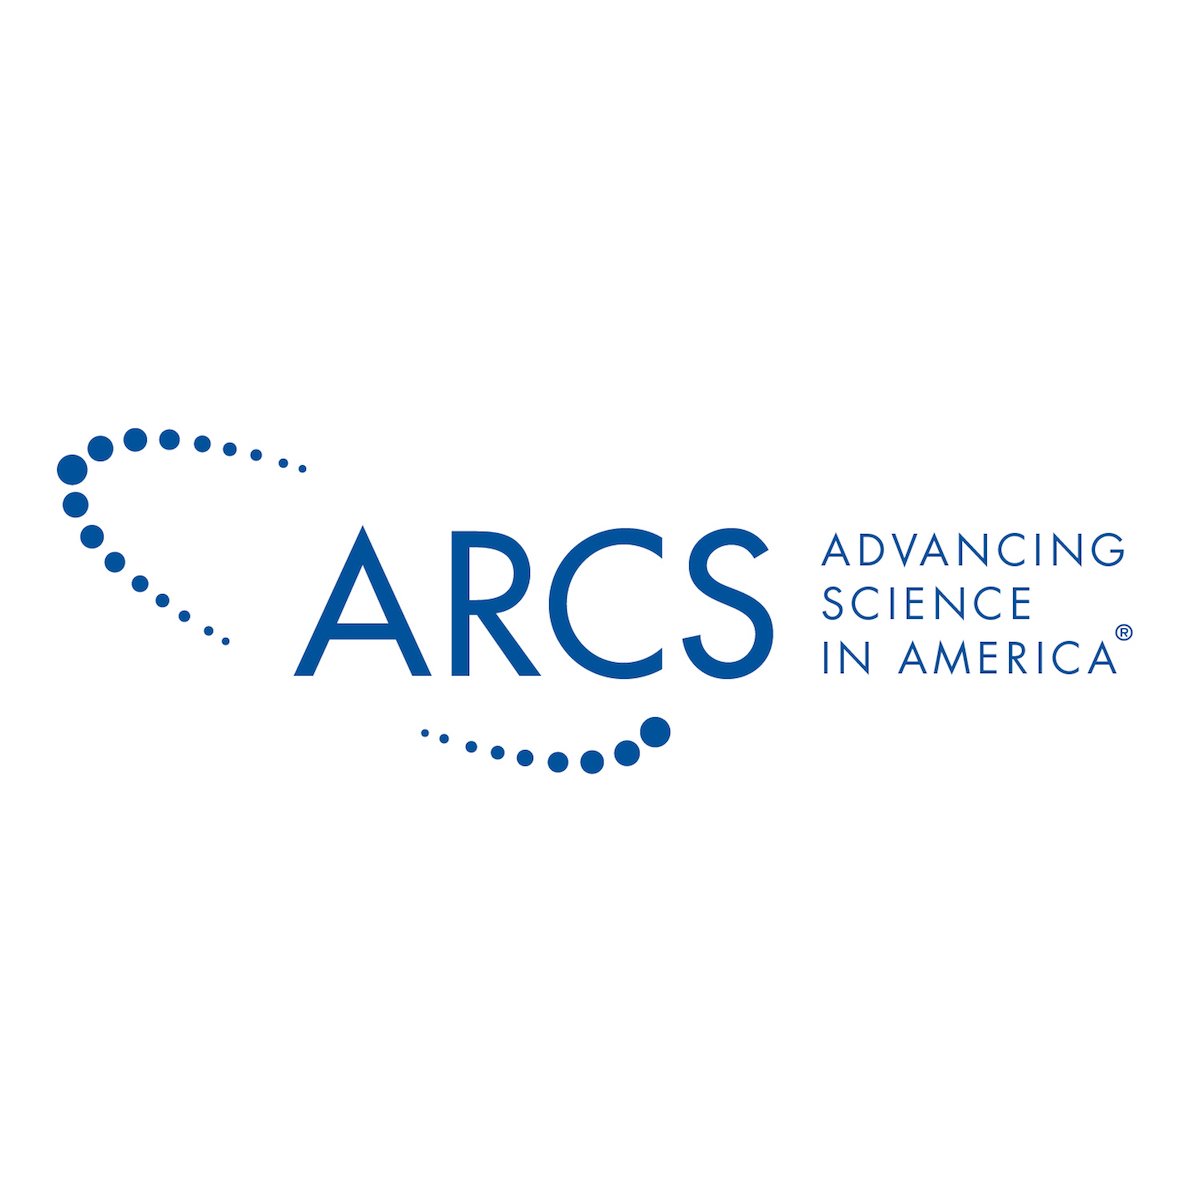 community service includes serving on ARCS Foundation's SEAC